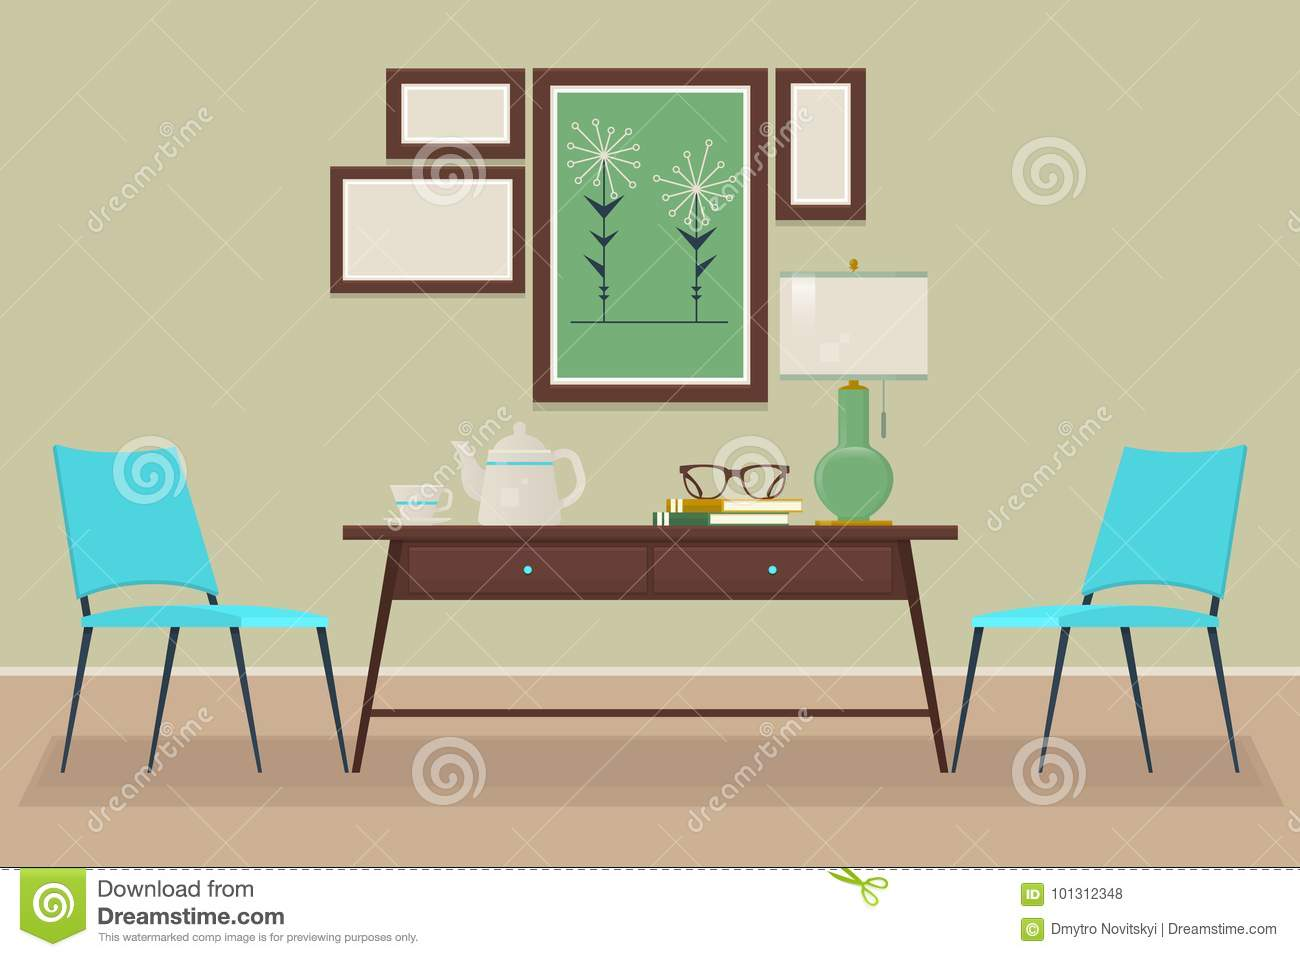 House Home Interior Design. Chair, Table, Lamp, Isolated Vector ...